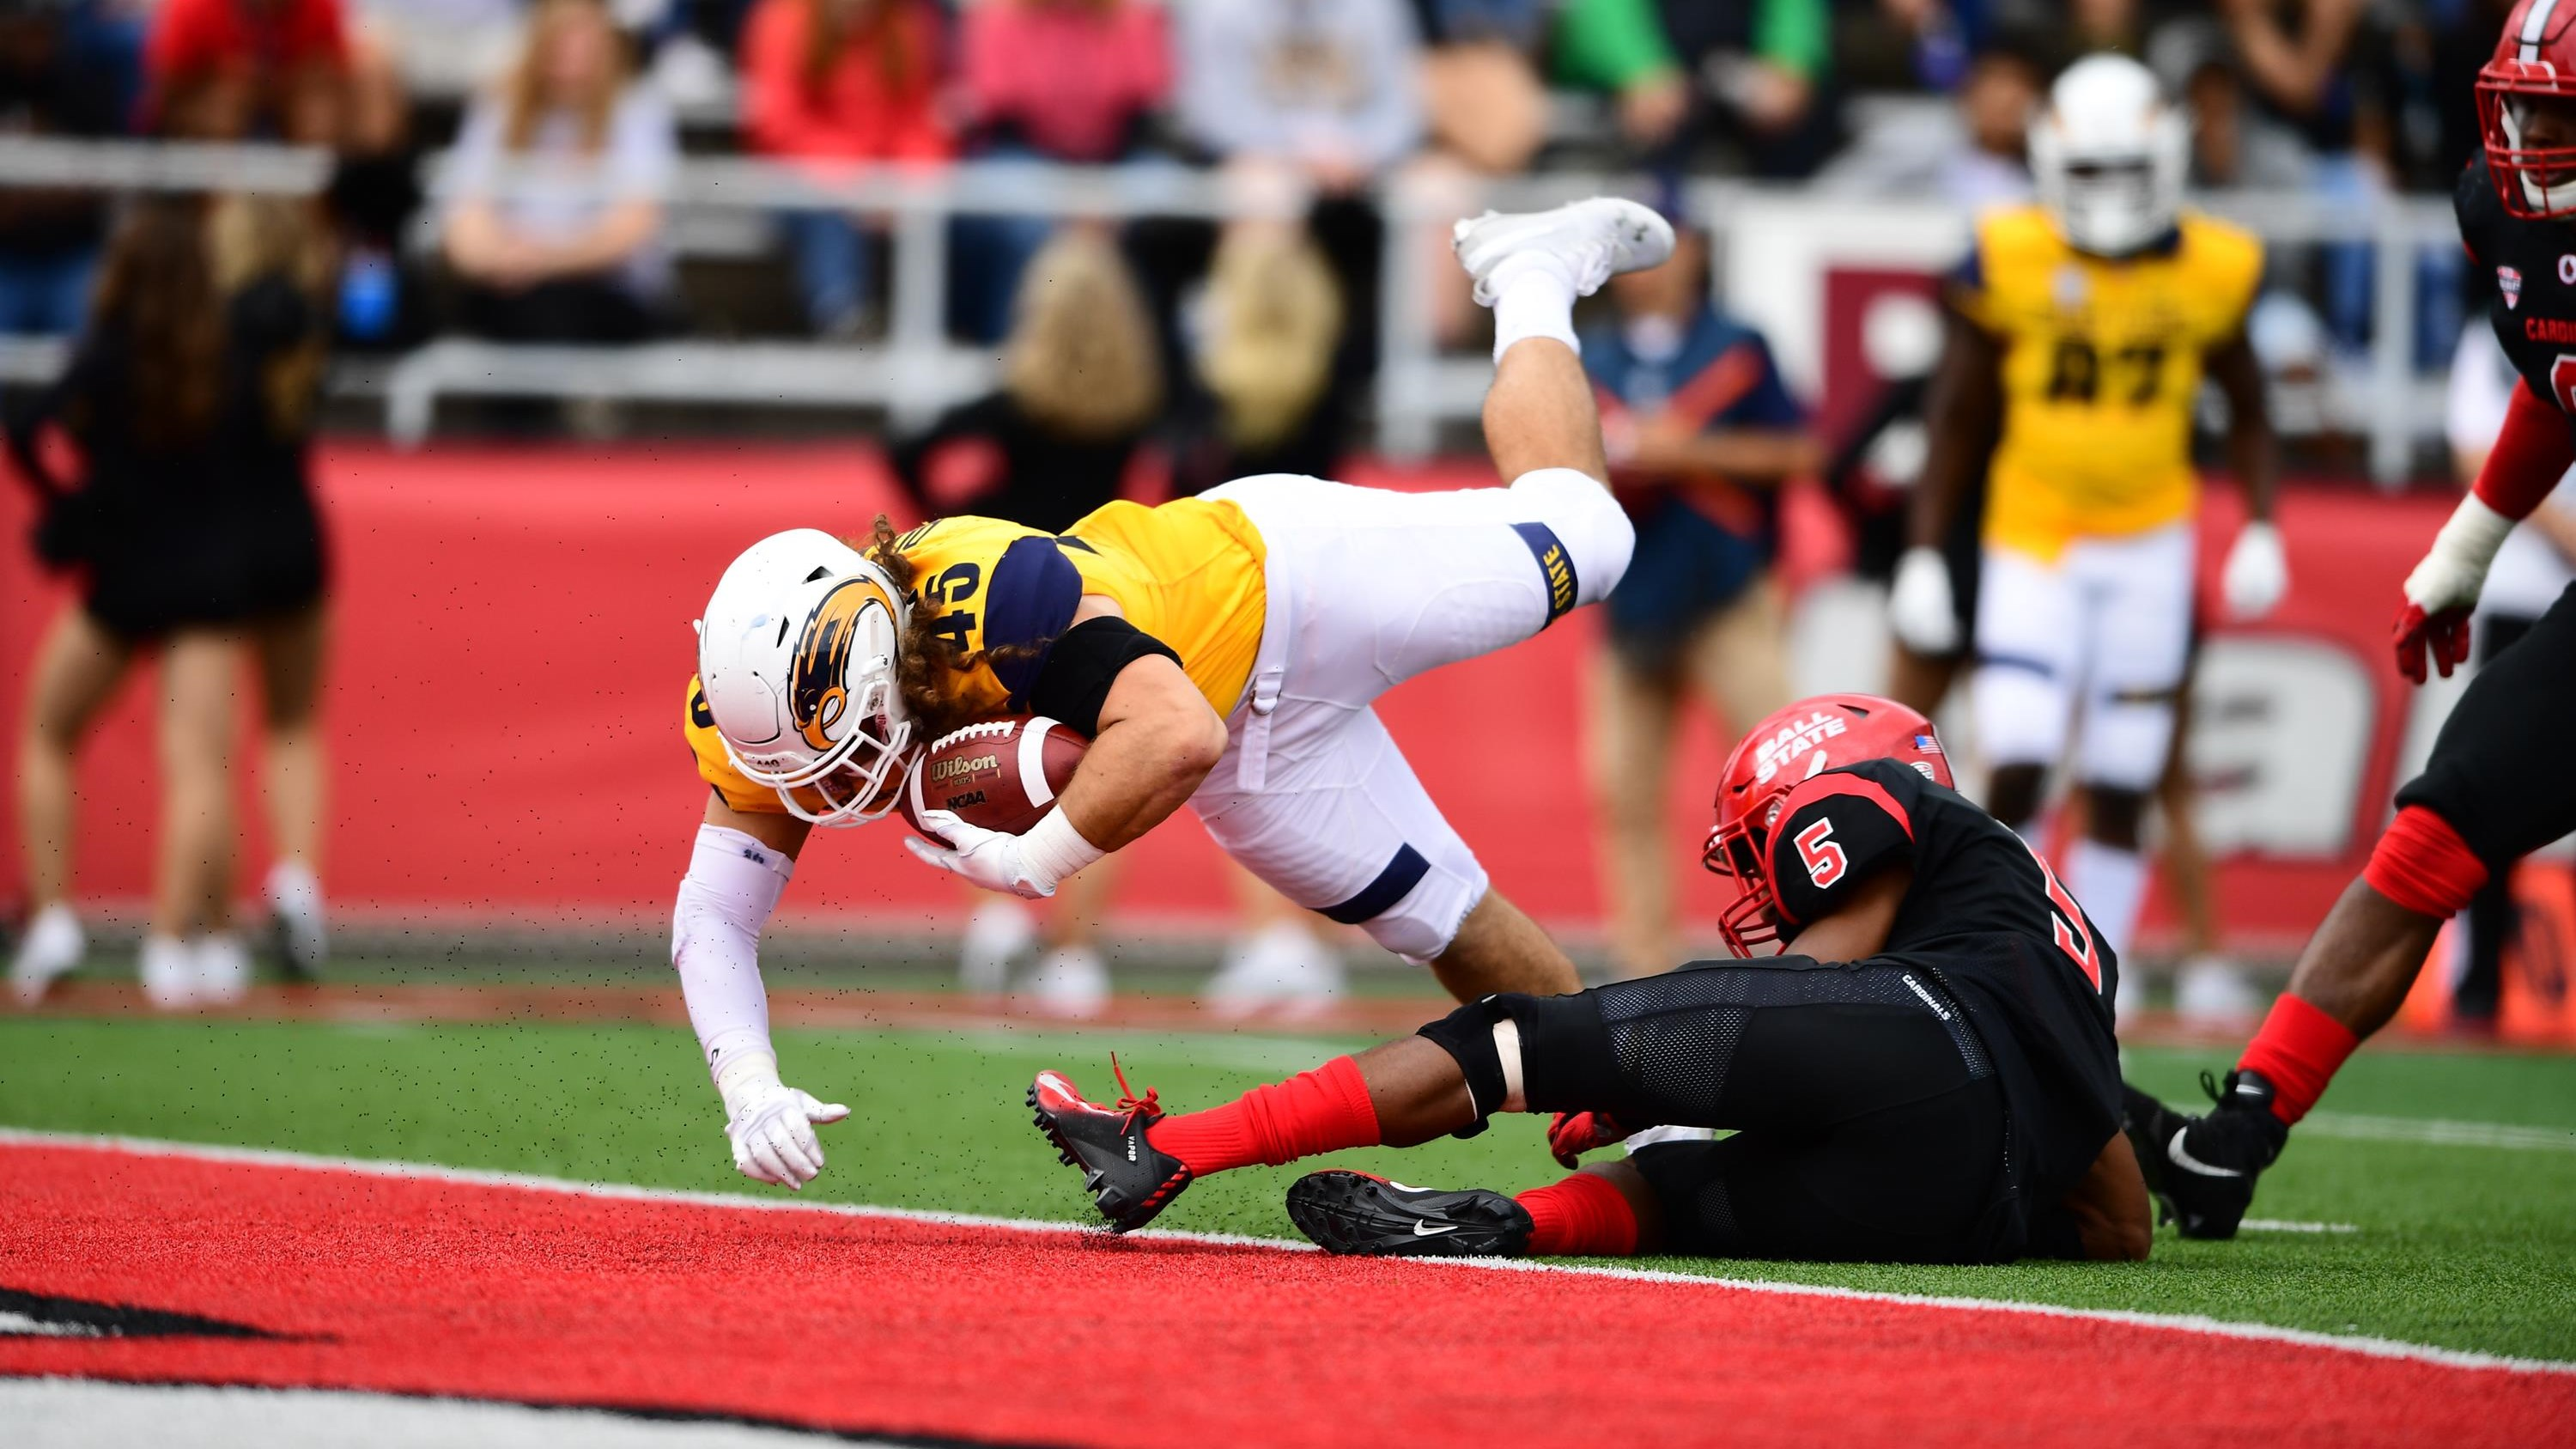 Spint Schrank Quick Start By Cardinals Gives Flashes Their First Mac Loss Kent